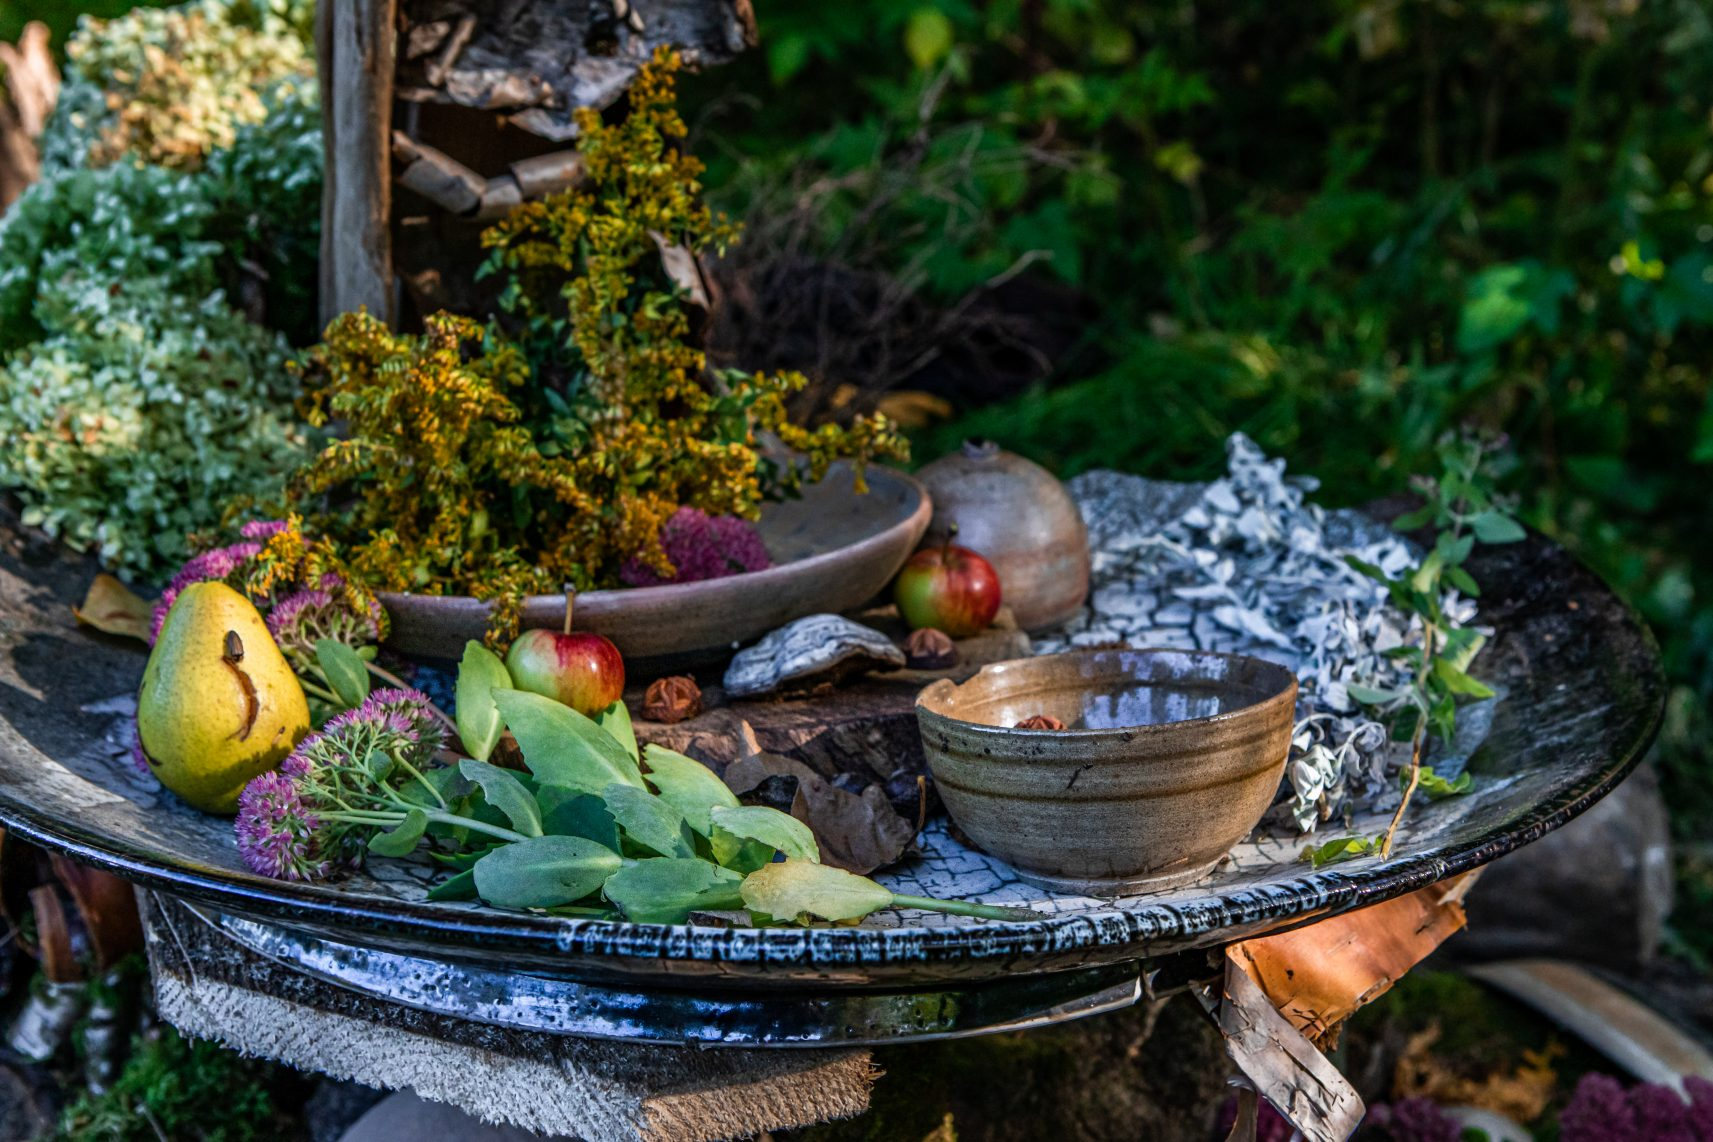 A close up shot with shallow depth of field of natural offerings on a ceramic plate in nature. Foraged fruit, flora, herbs, during earth festival